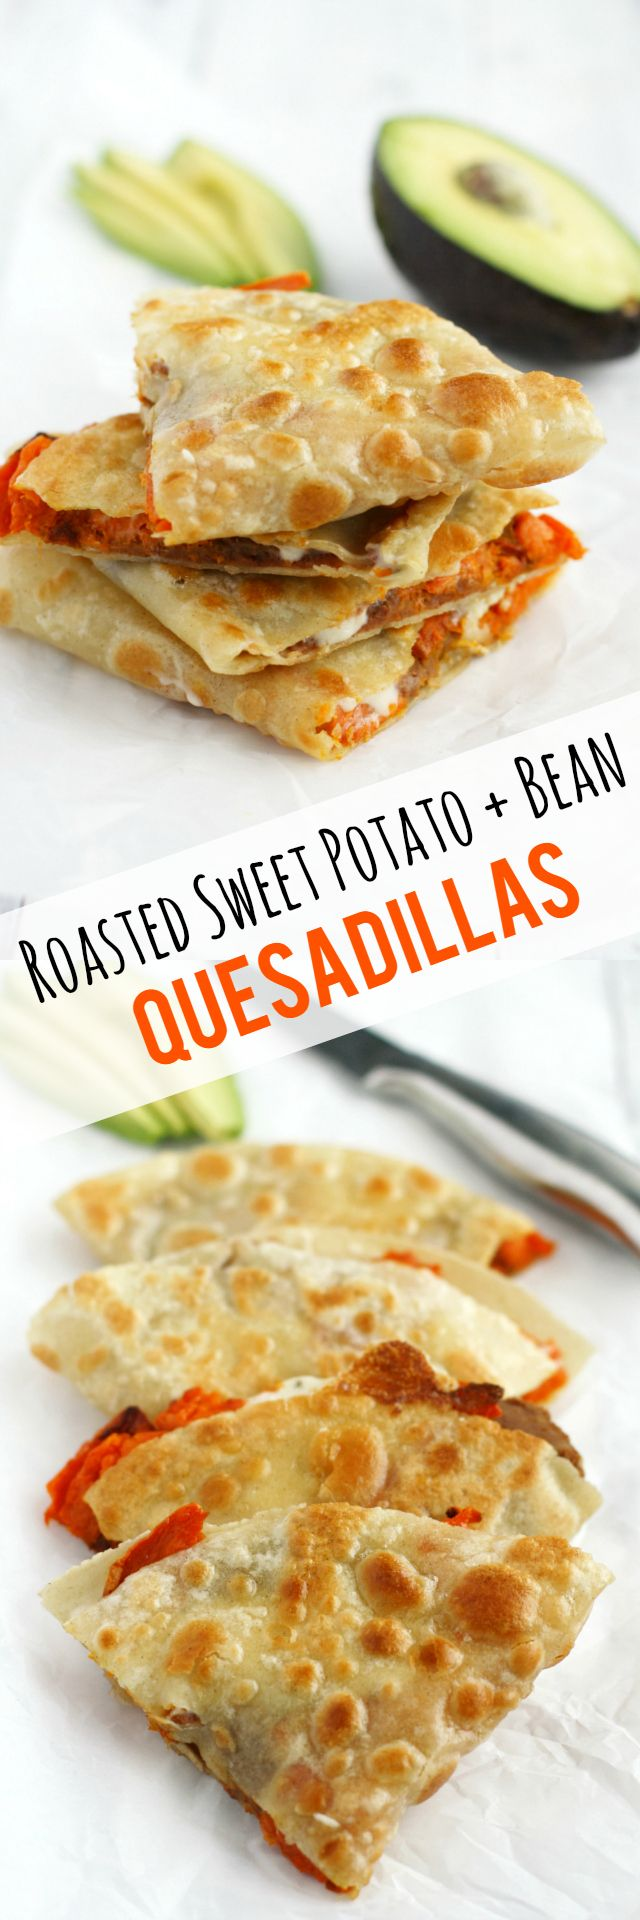 Easy, Yummy, Satisfying --> Roasted Sweet Potato + Bean Quesadillas #fastfood #comfort